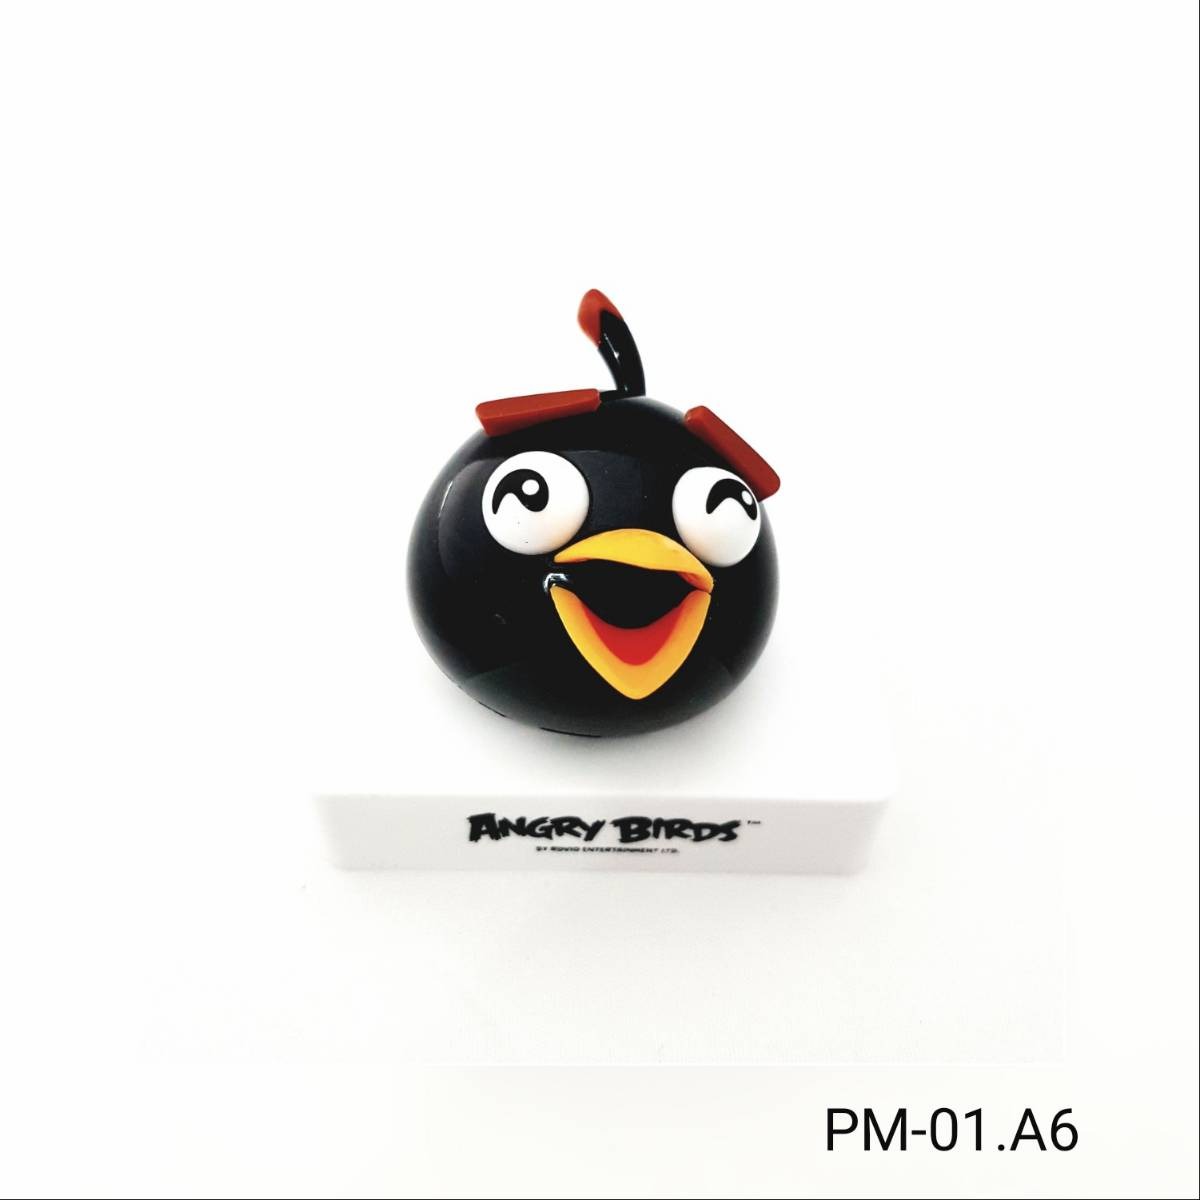 Parfum Mobil Angry Birds Collection Pm-001/a60